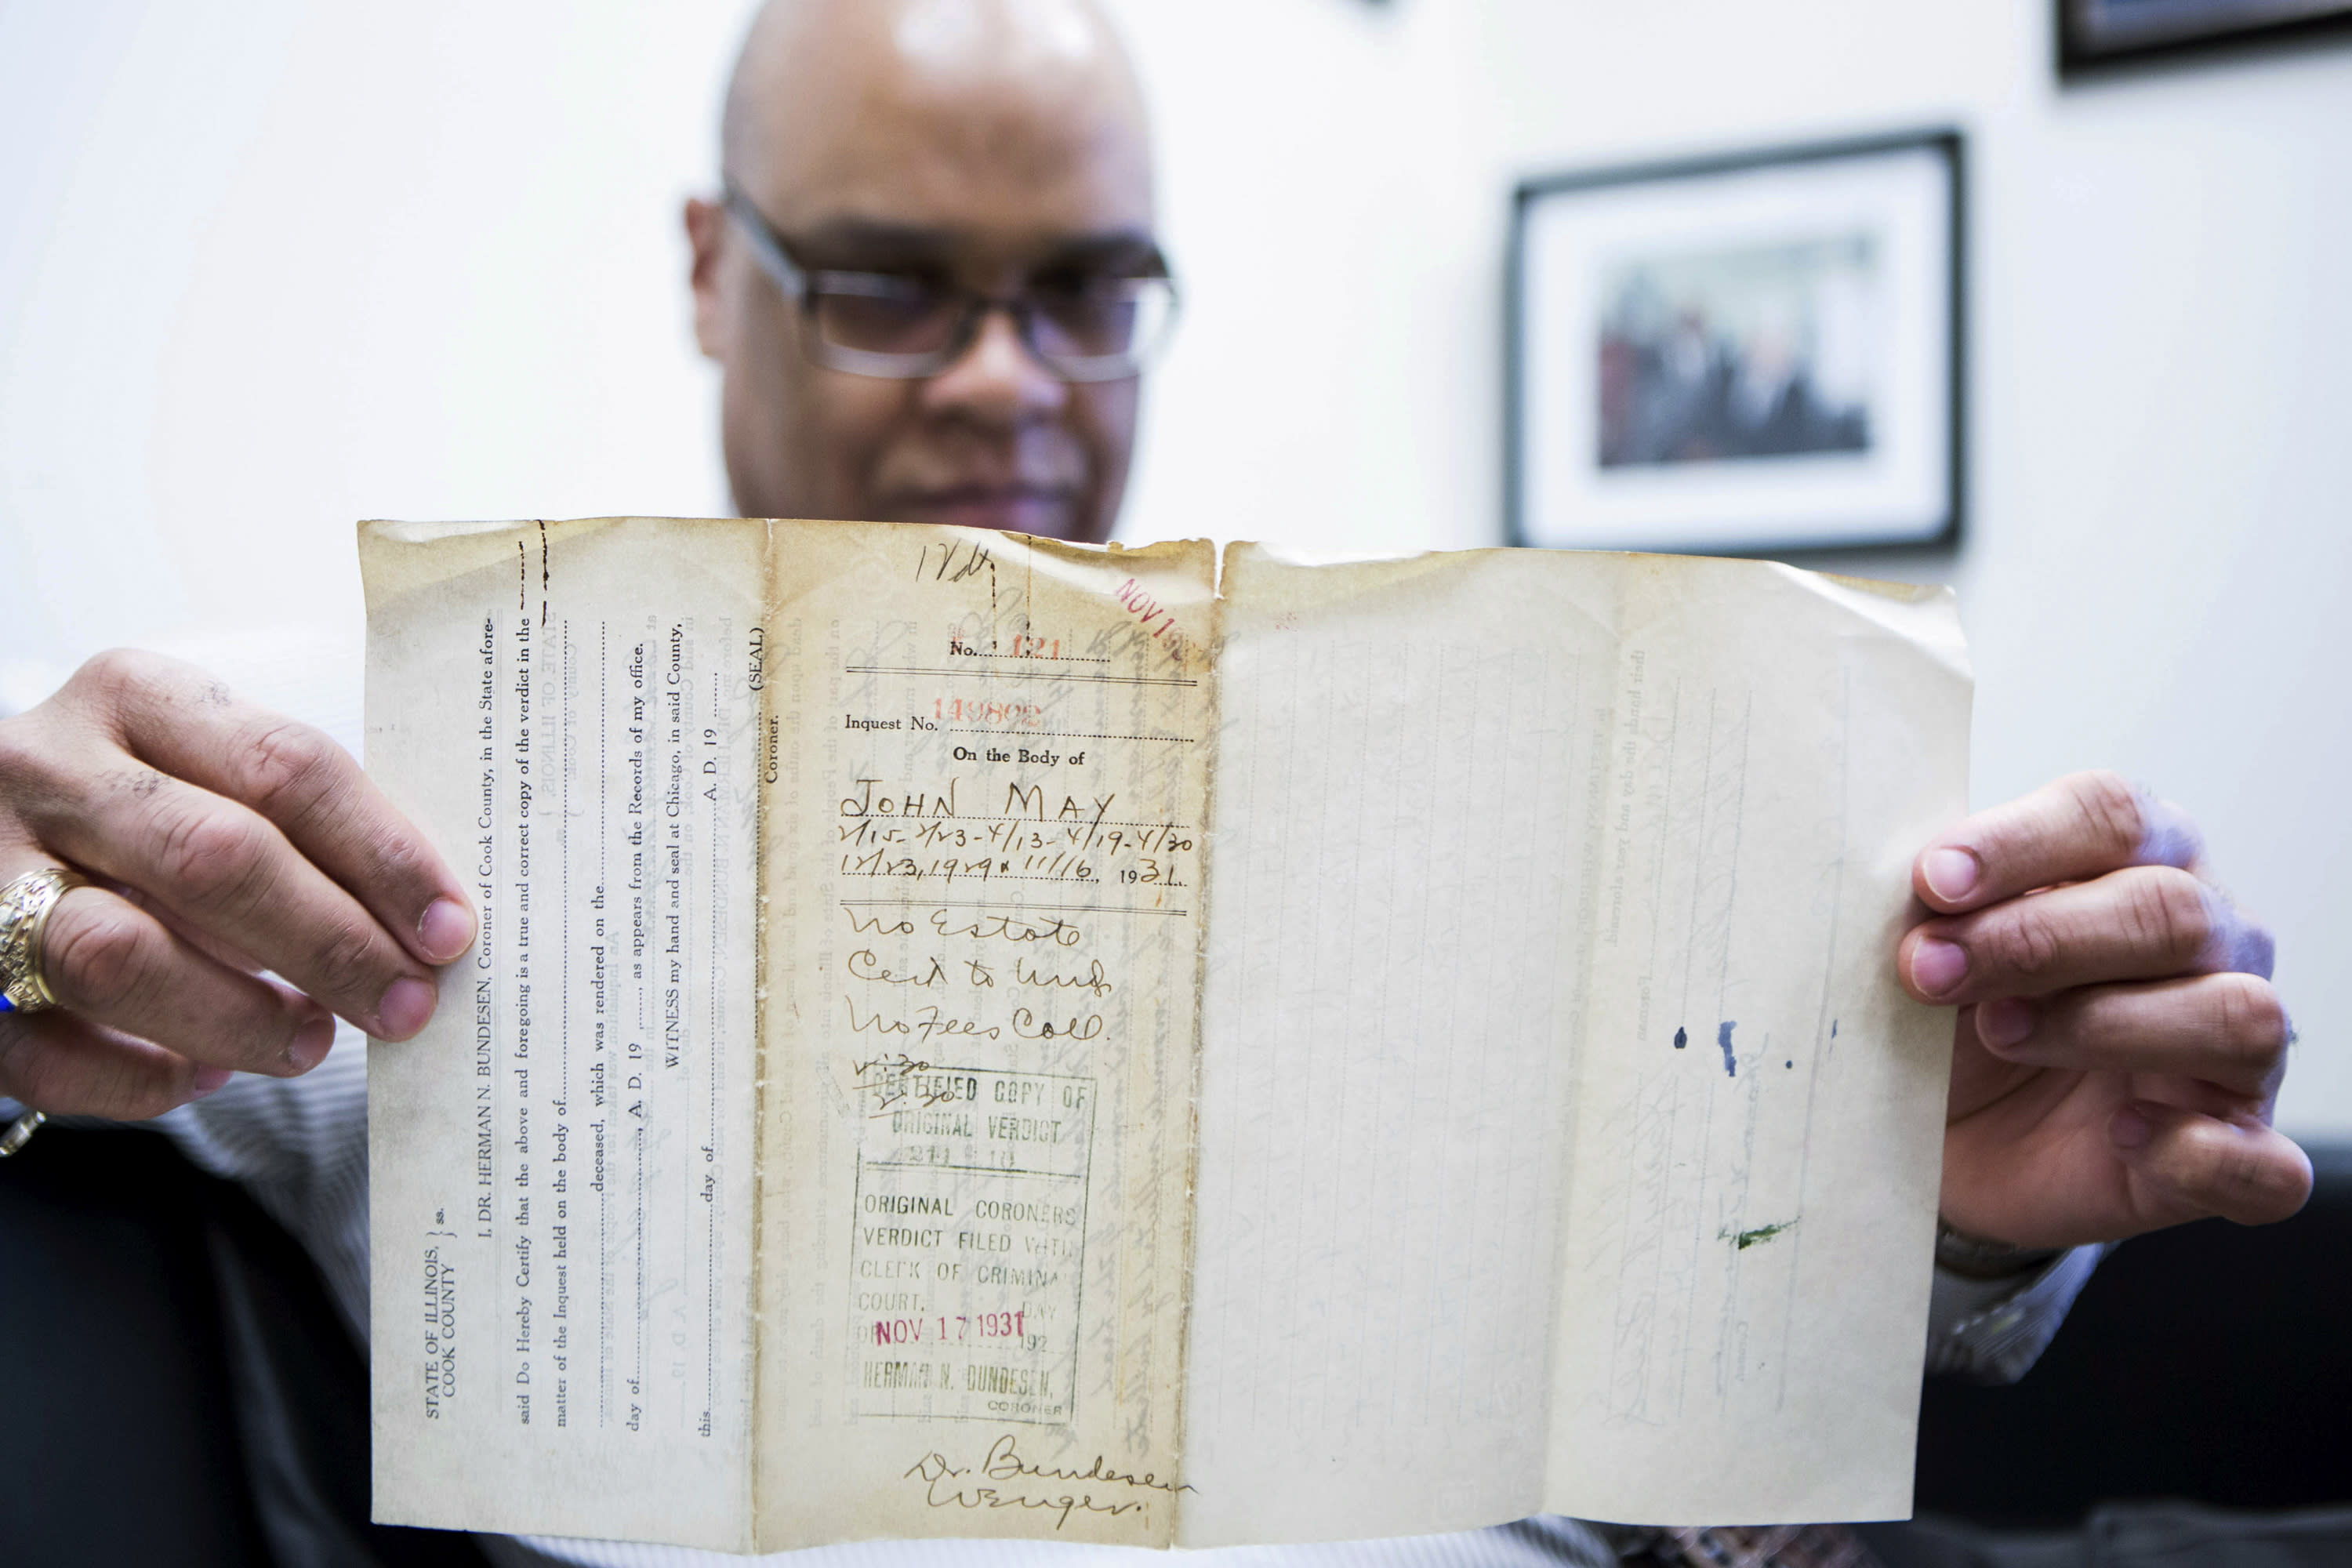 Autopsy reports found from 1929 Valentine's Day massacre